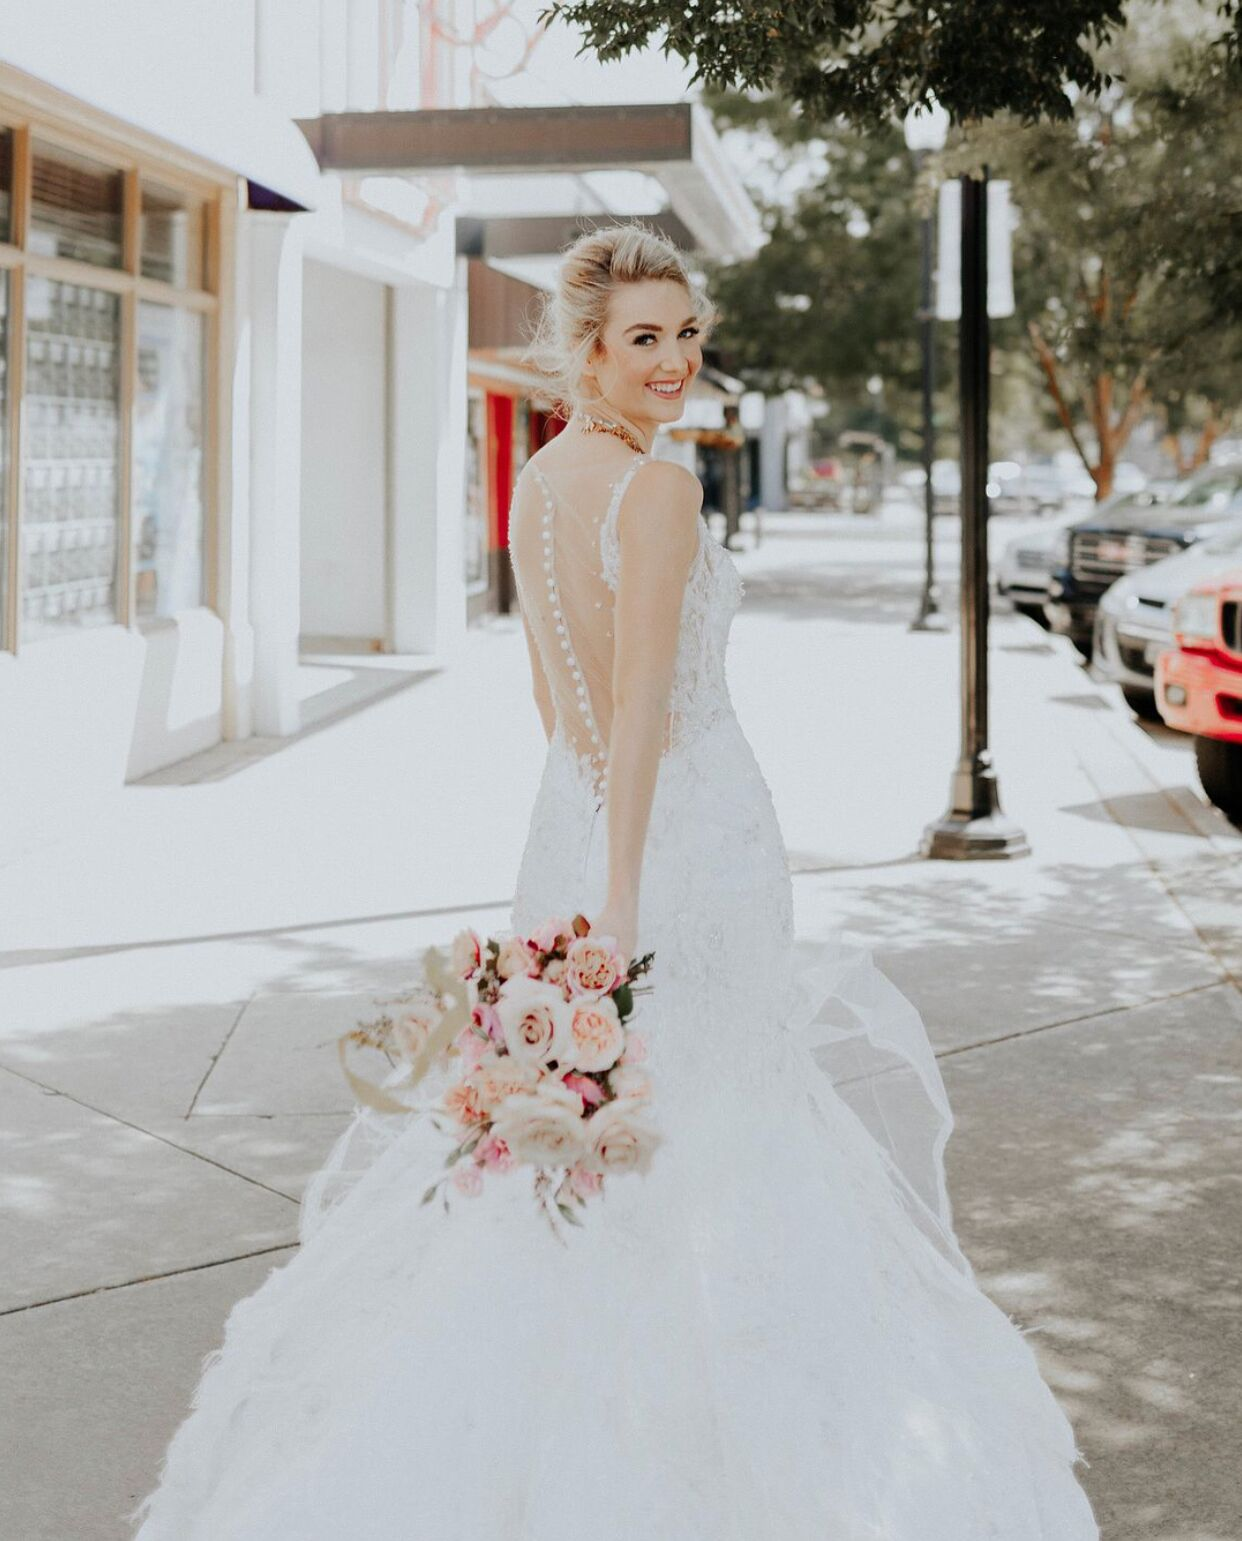 Bridal Salons in Norman, OK - The Knot